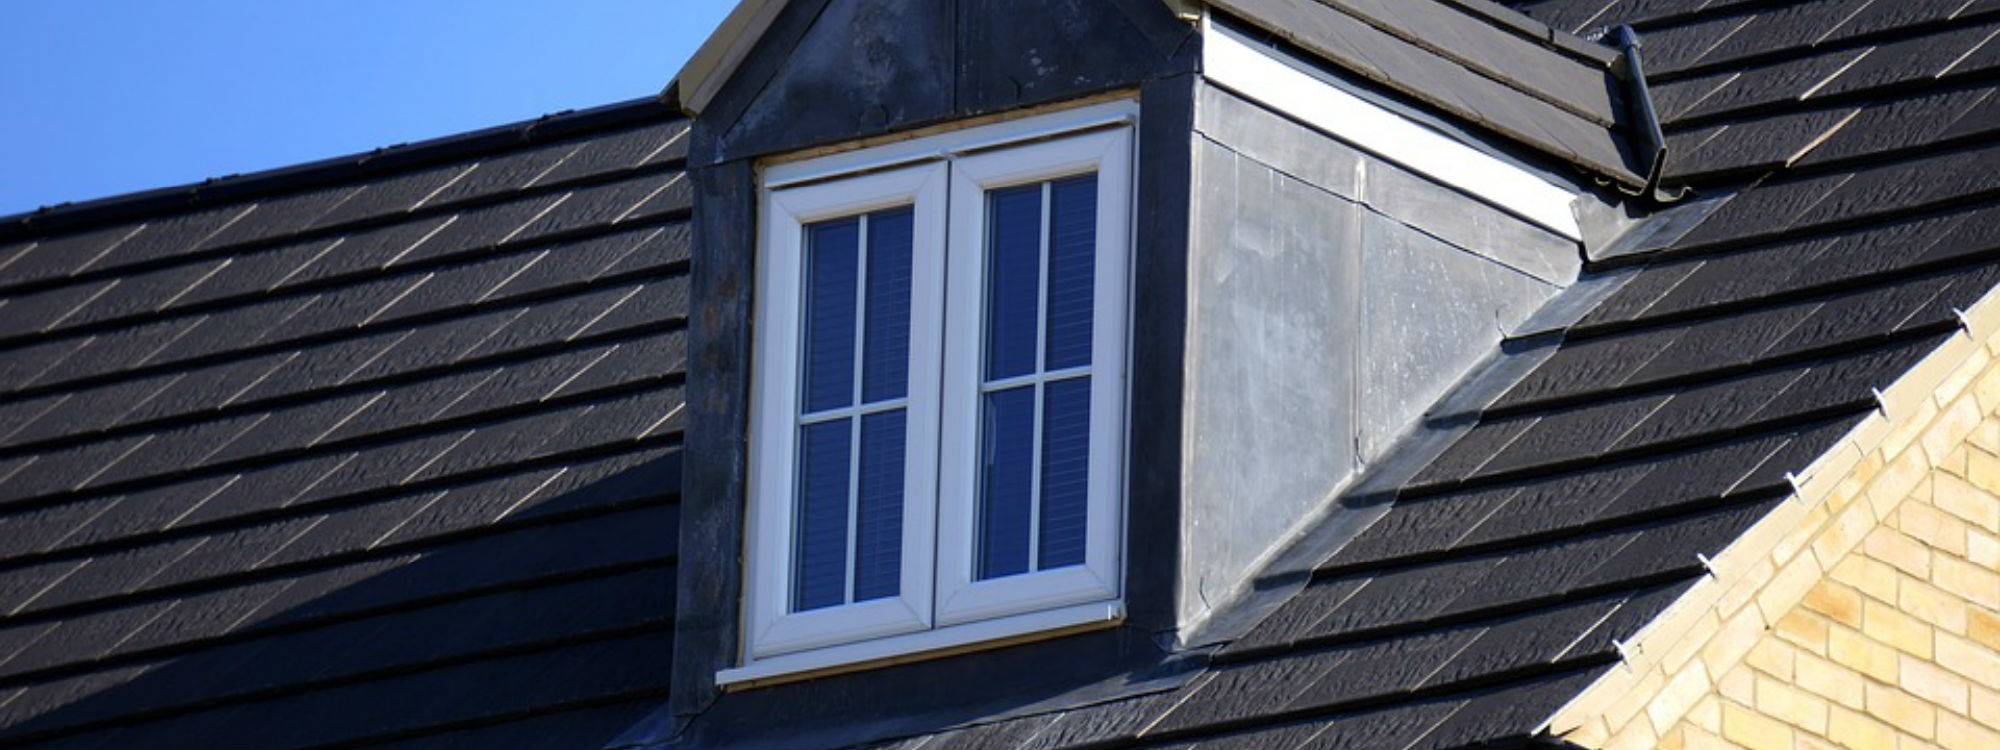 Velux Roof Windows, roof windows, Velux